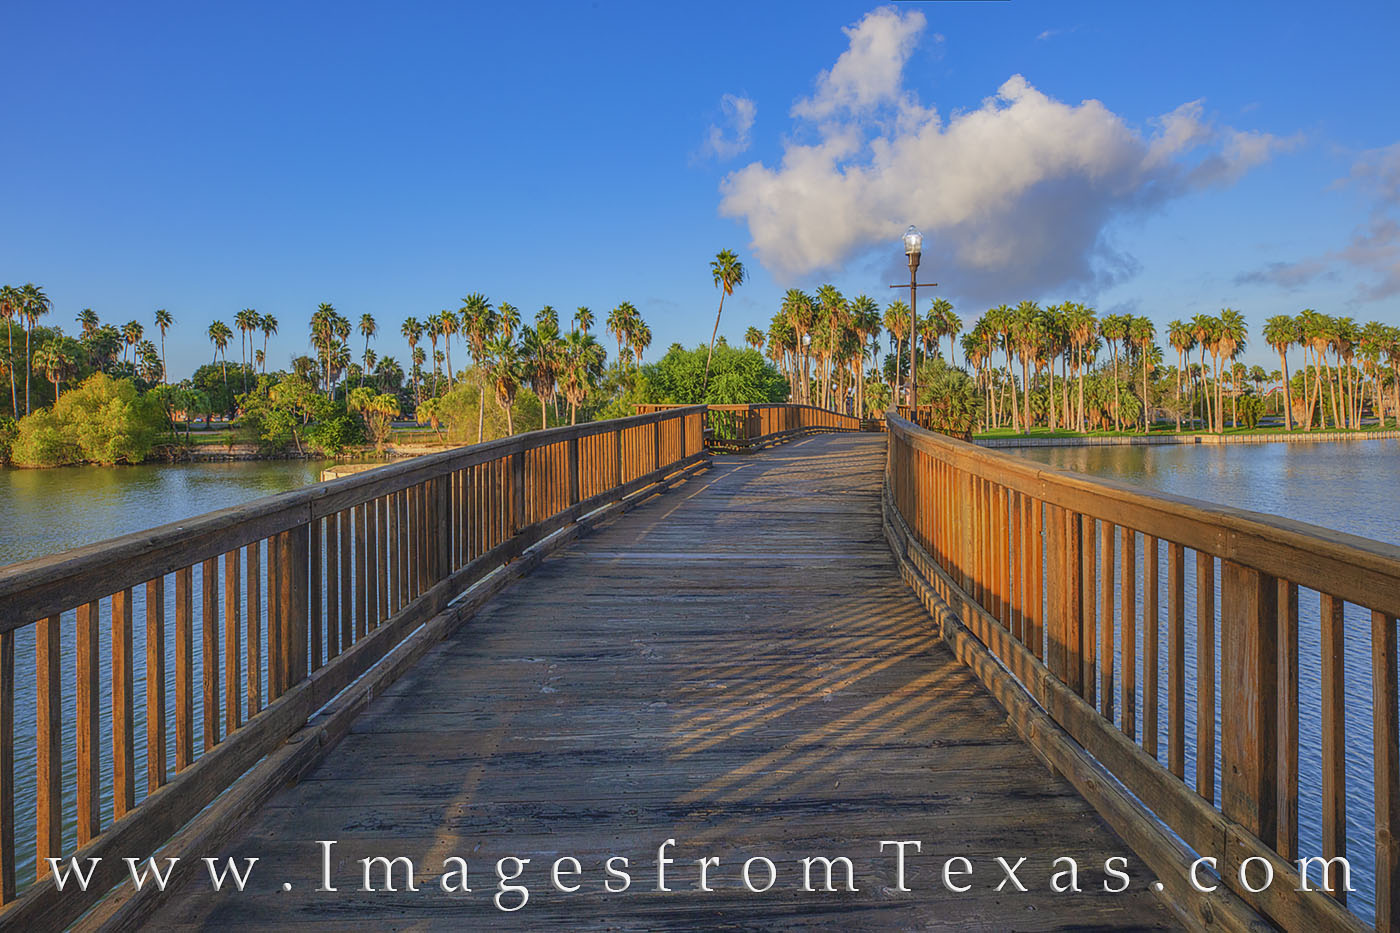 resaca, brownsville, texas coast, border town, palm trees, south texas, morning, texas southmost college, bridge, photo